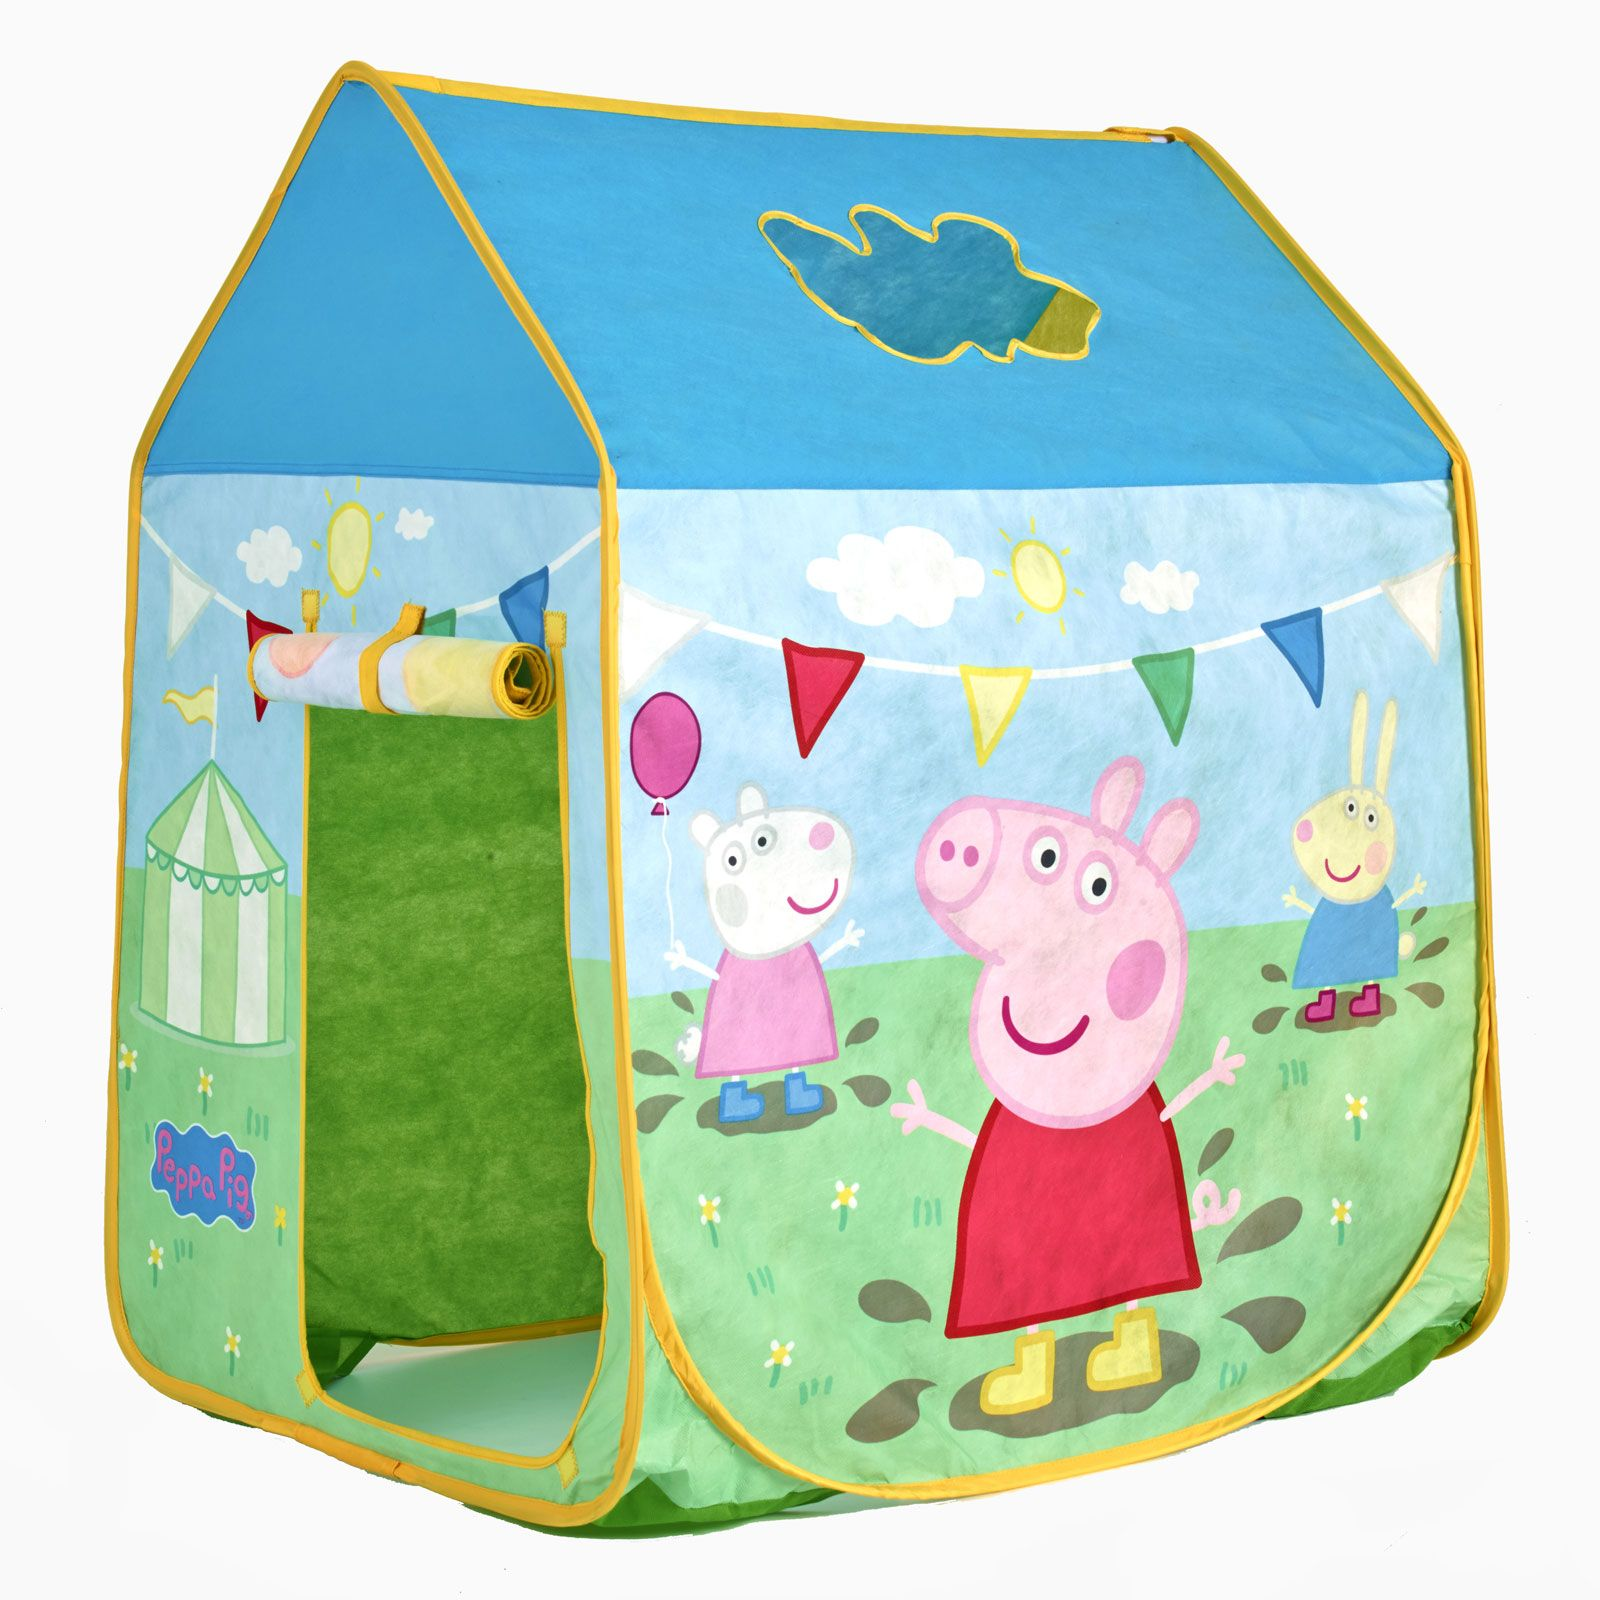 CHILDRENS CHARACTER POP UP PLAY TENTS WENDY HOUSES INDOOR OUTDOOR ACTIVE PLAY | eBay  sc 1 st  eBay & CHILDRENS CHARACTER POP UP PLAY TENTS WENDY HOUSES INDOOR OUTDOOR ...